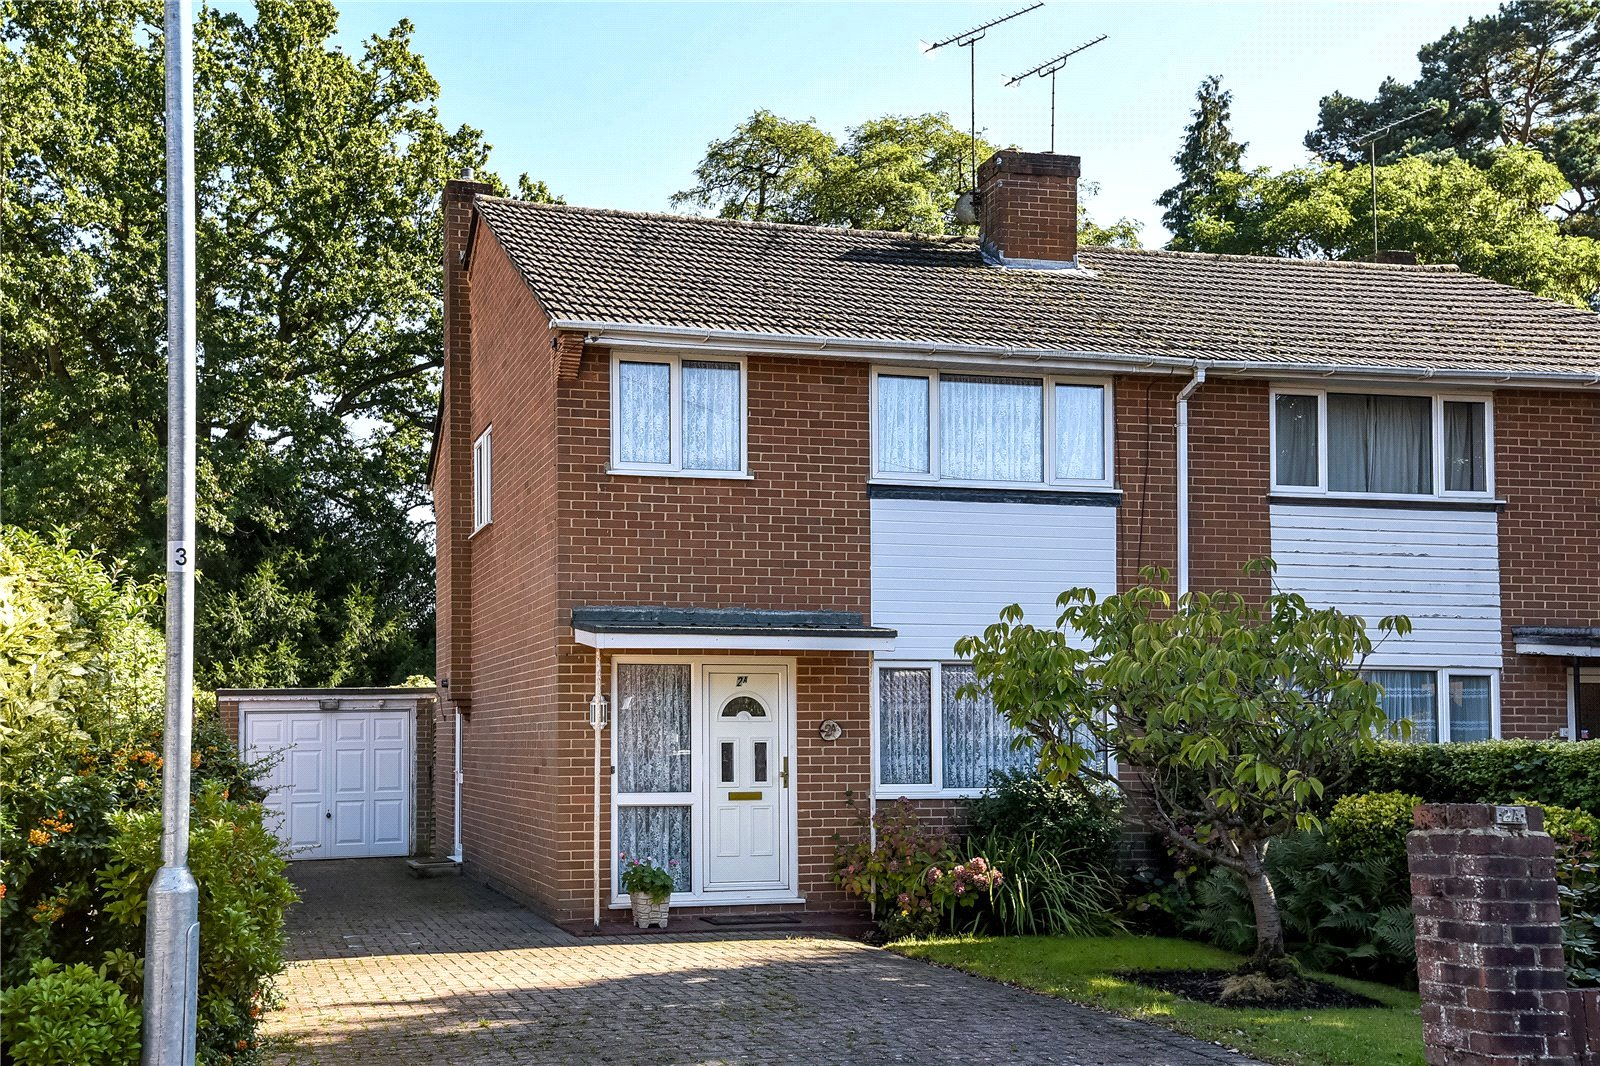 3 Bedrooms Semi Detached House for sale in Albion Road, Sandhurst, Berkshire, GU47